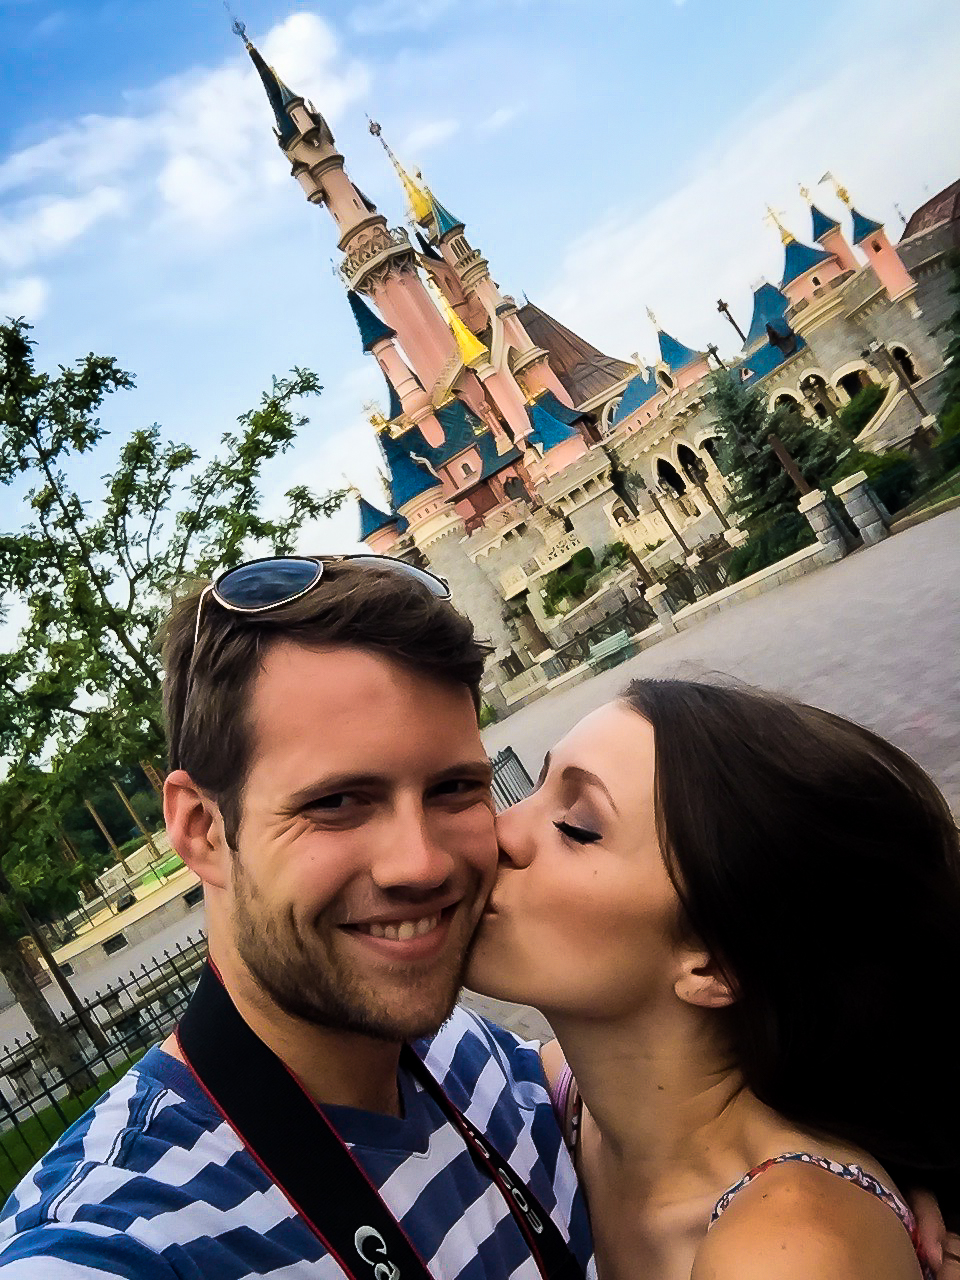 ResortLoop.com Episode 278 – A Disneyland Paris Honeymoon!